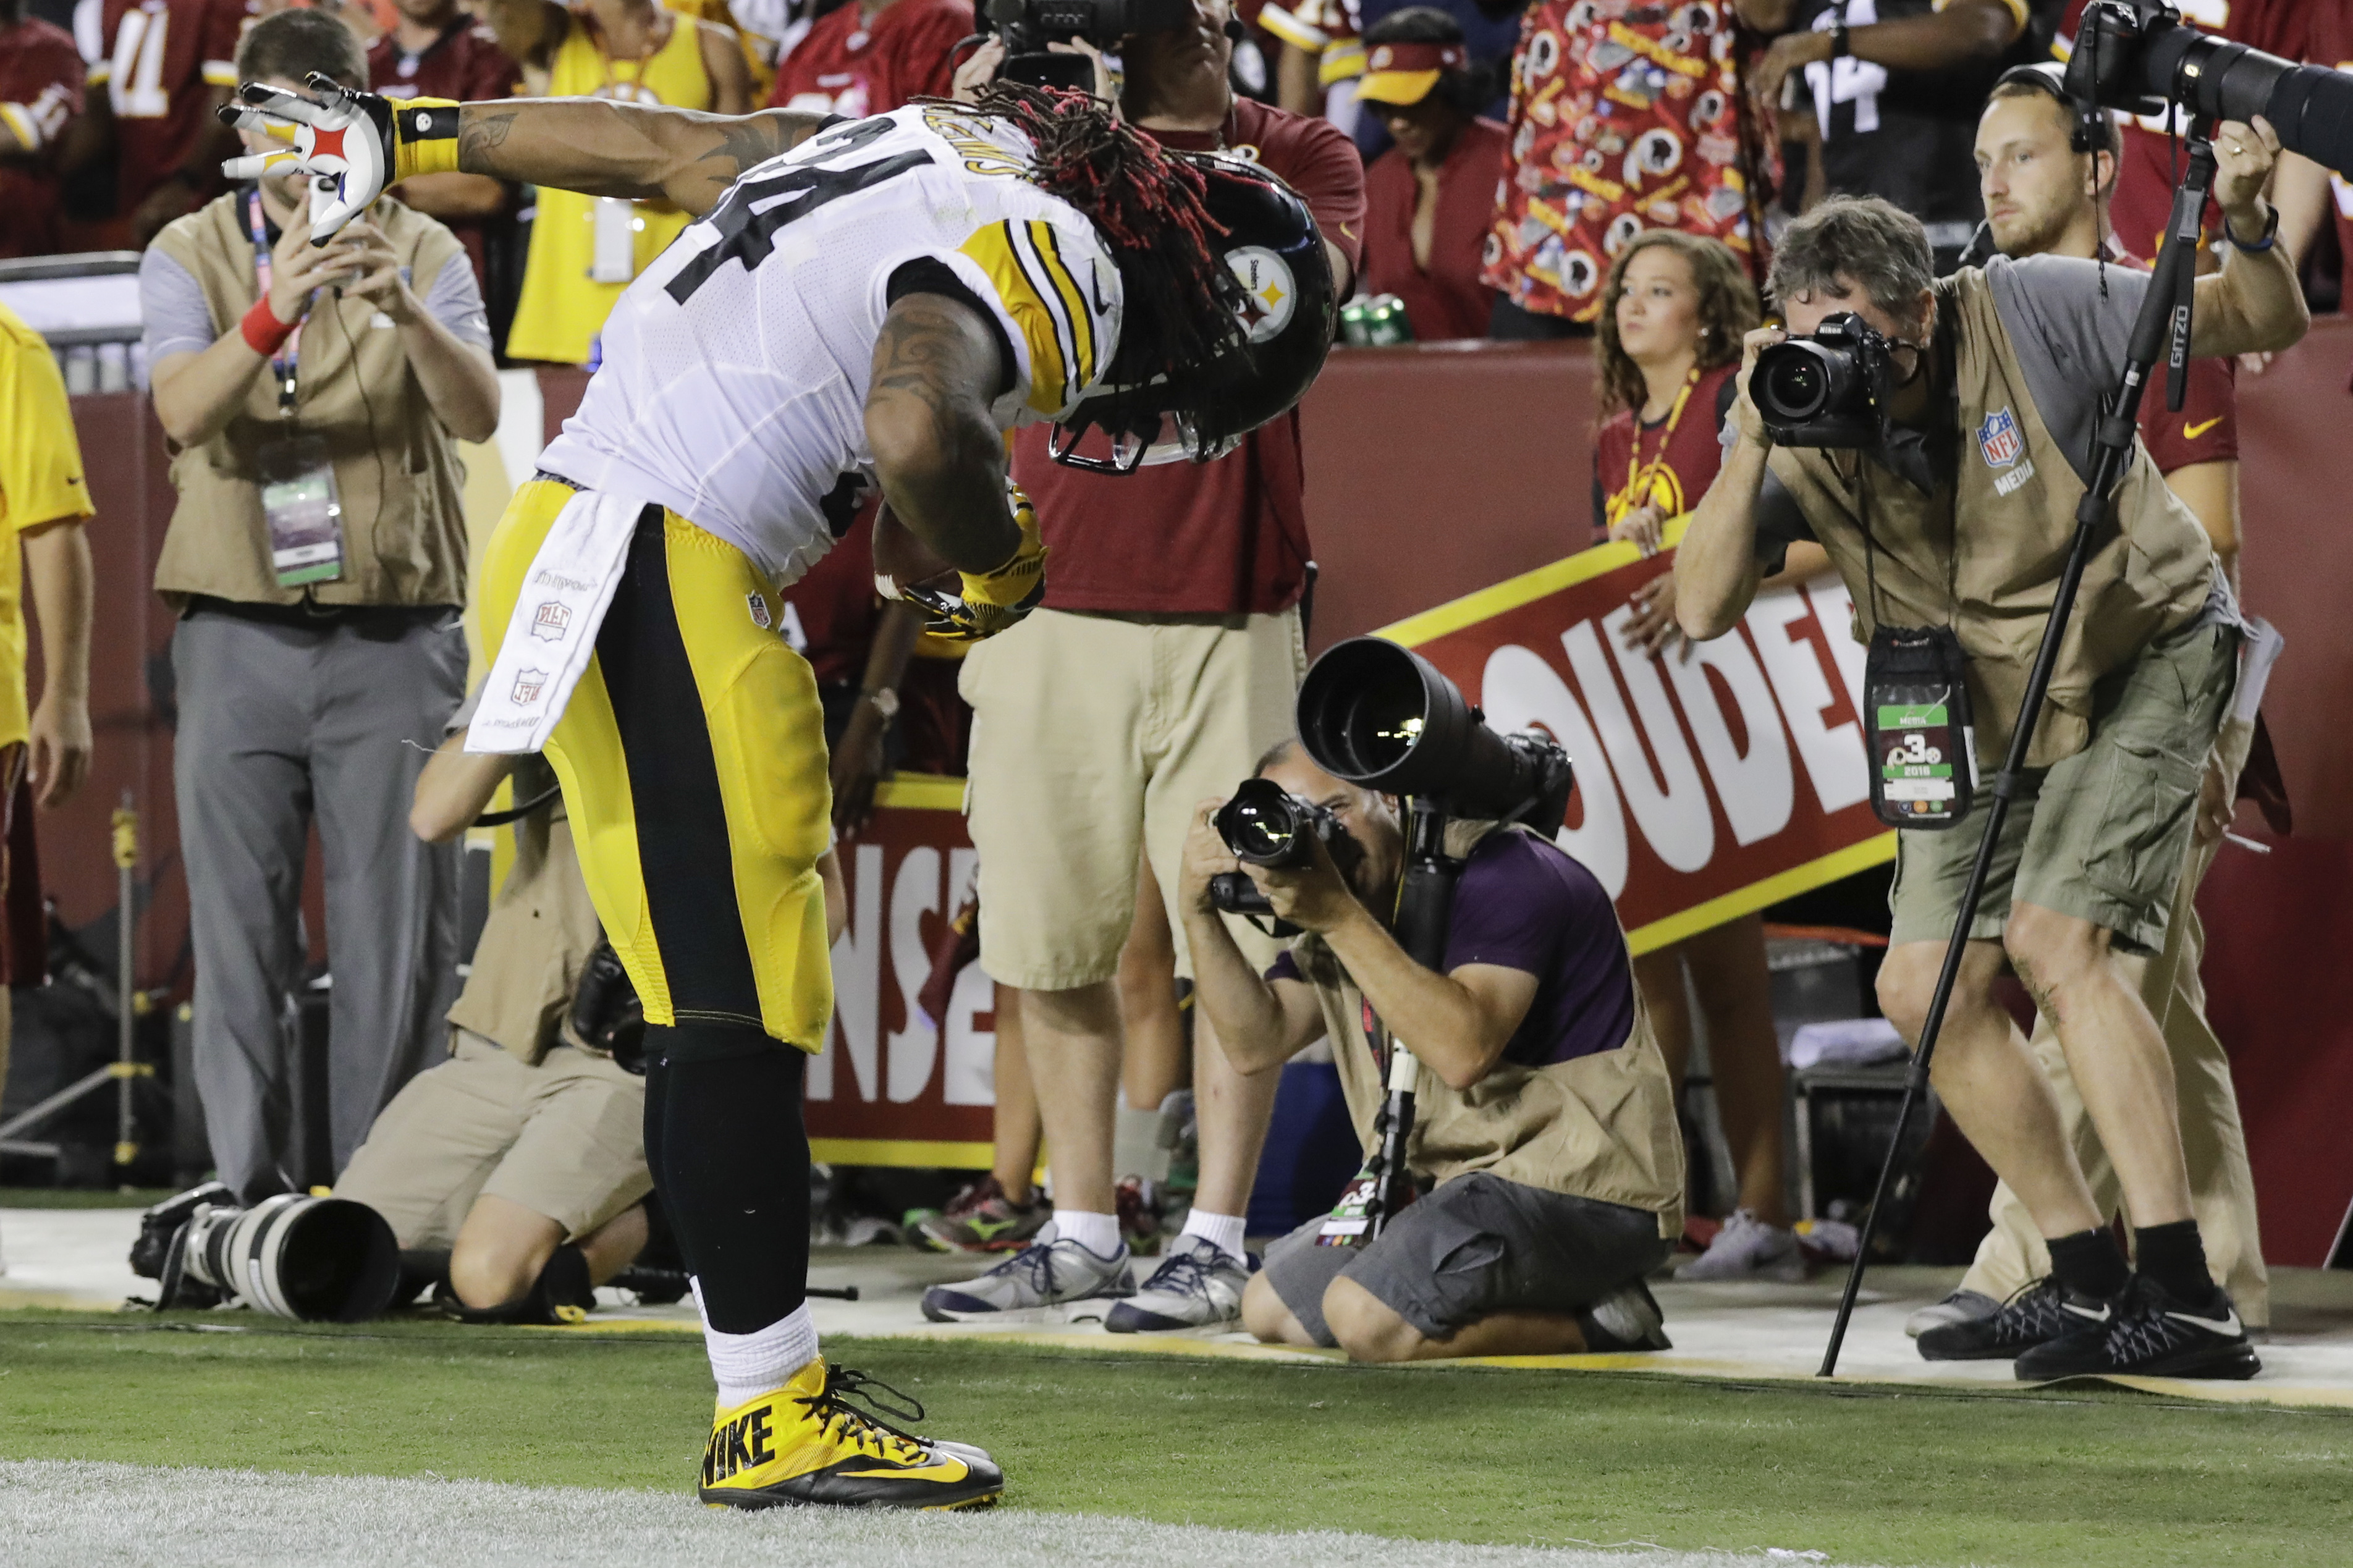 Pittsburgh Steelers running back DeAngelo Williams (34) bows in the end zone after scoring a touchdown during the second half of an NFL football game against the Washington Redskins in Landover, Md., Monday, Sept. 12, 2016. (AP Photo/Patrick Semansky)